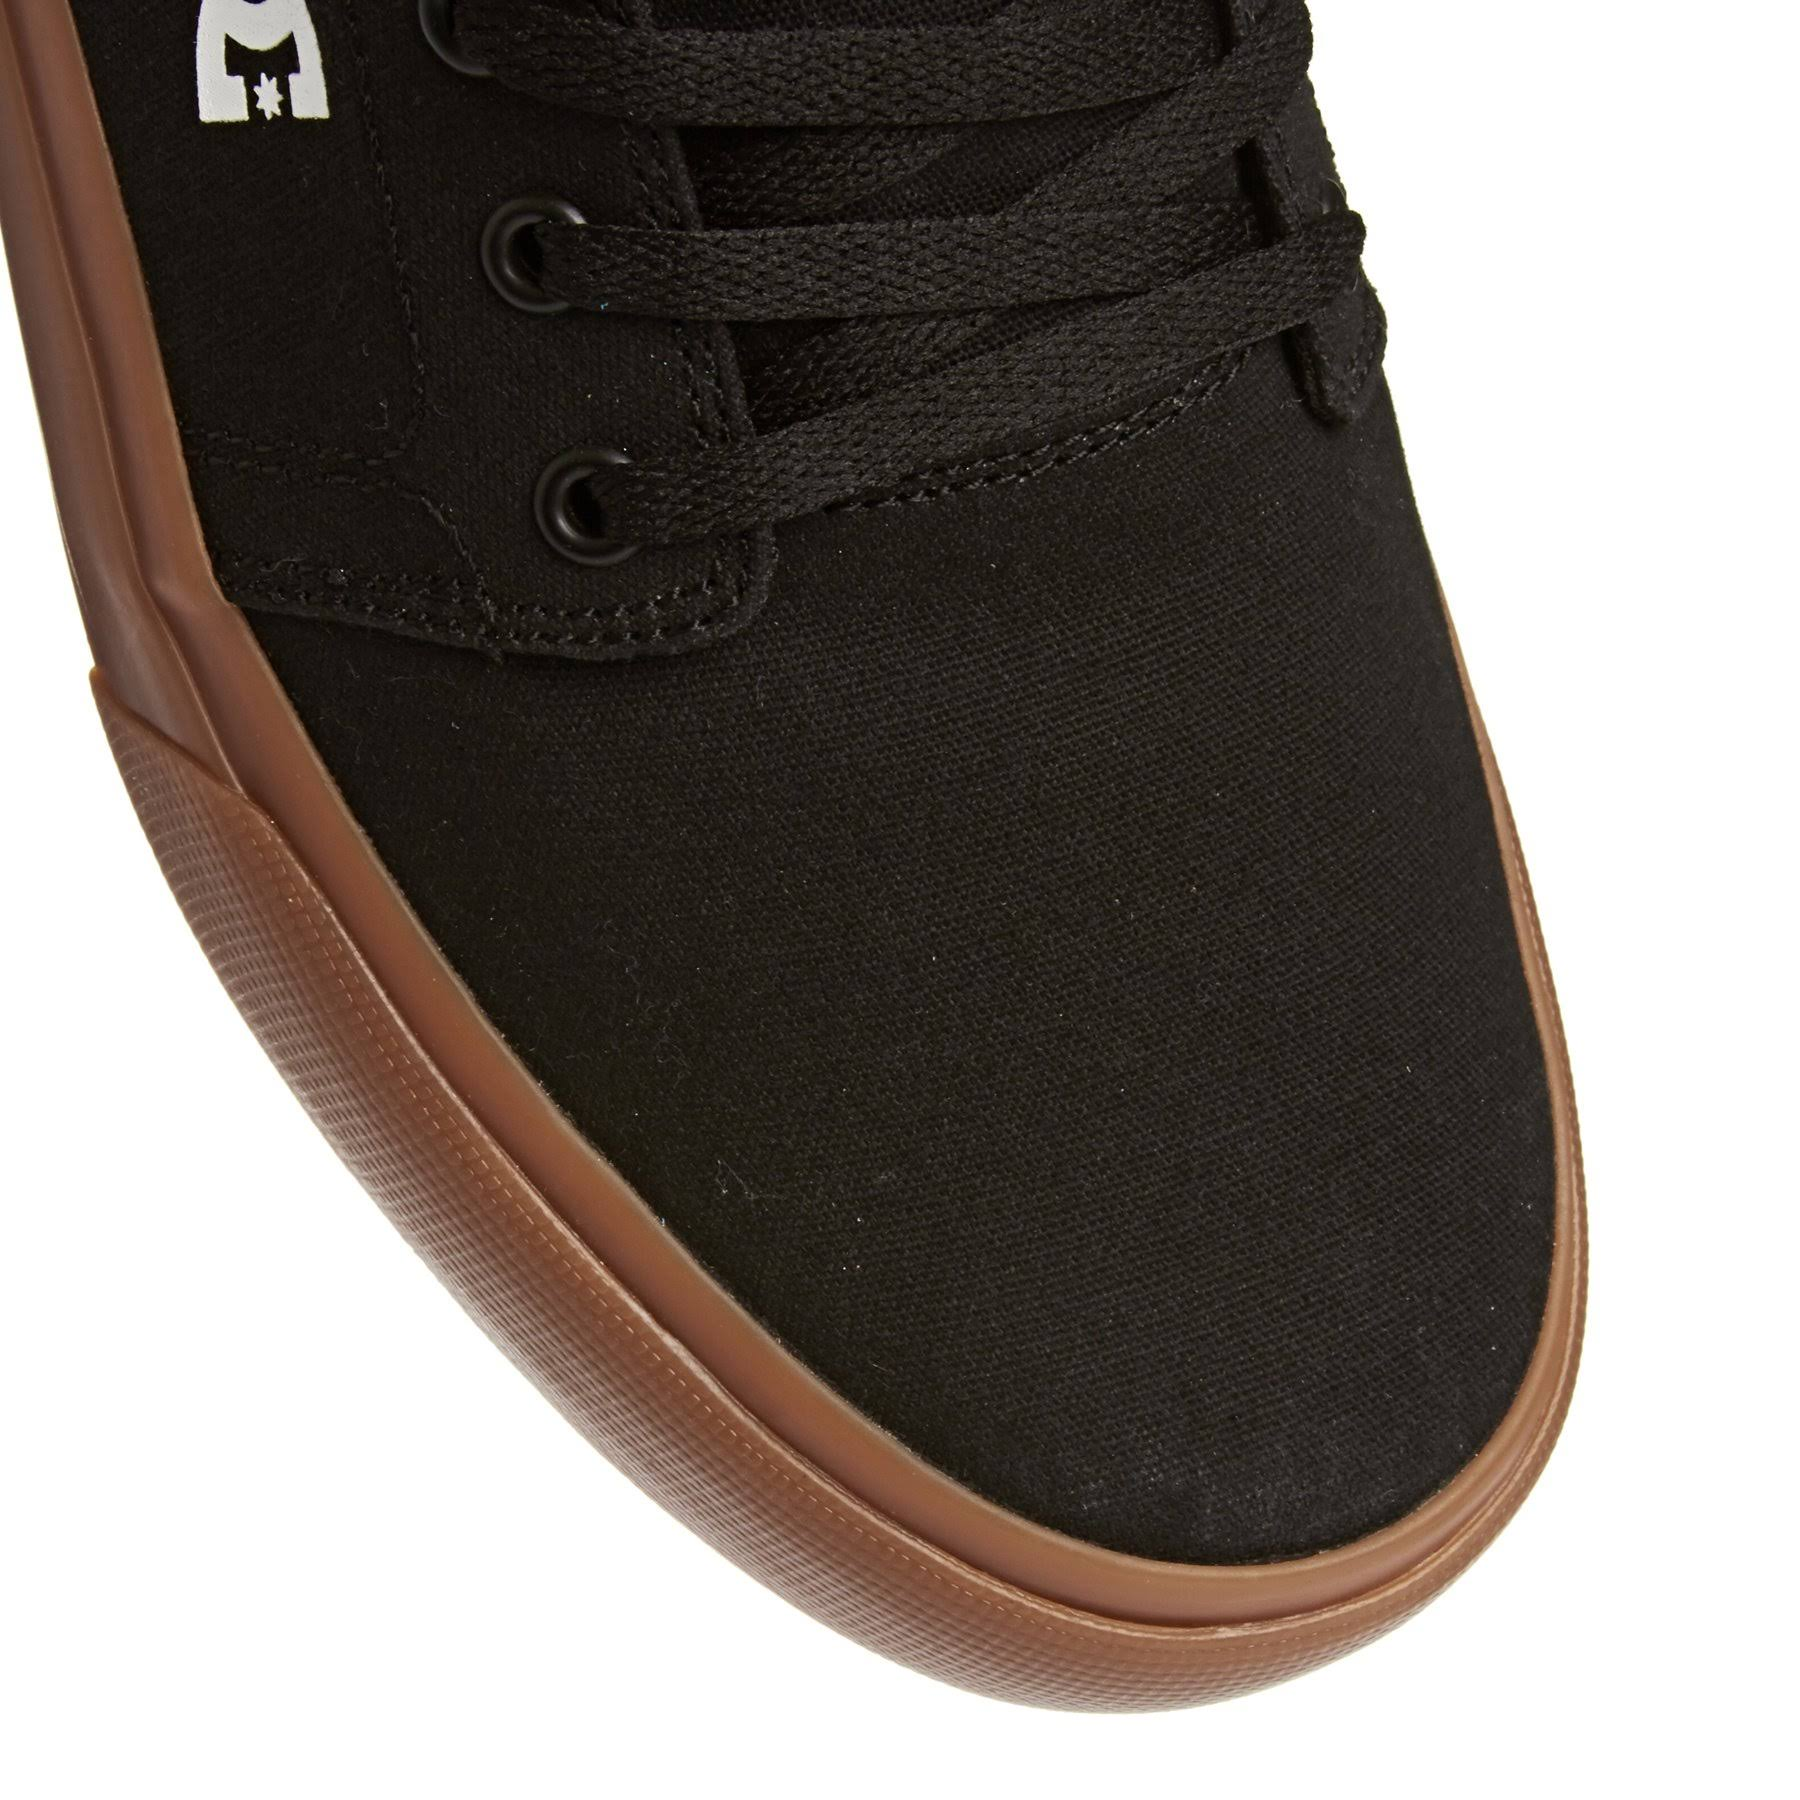 Uomo Shoes 7 Tx BlackGum Trase Dc HeWIYD9E2